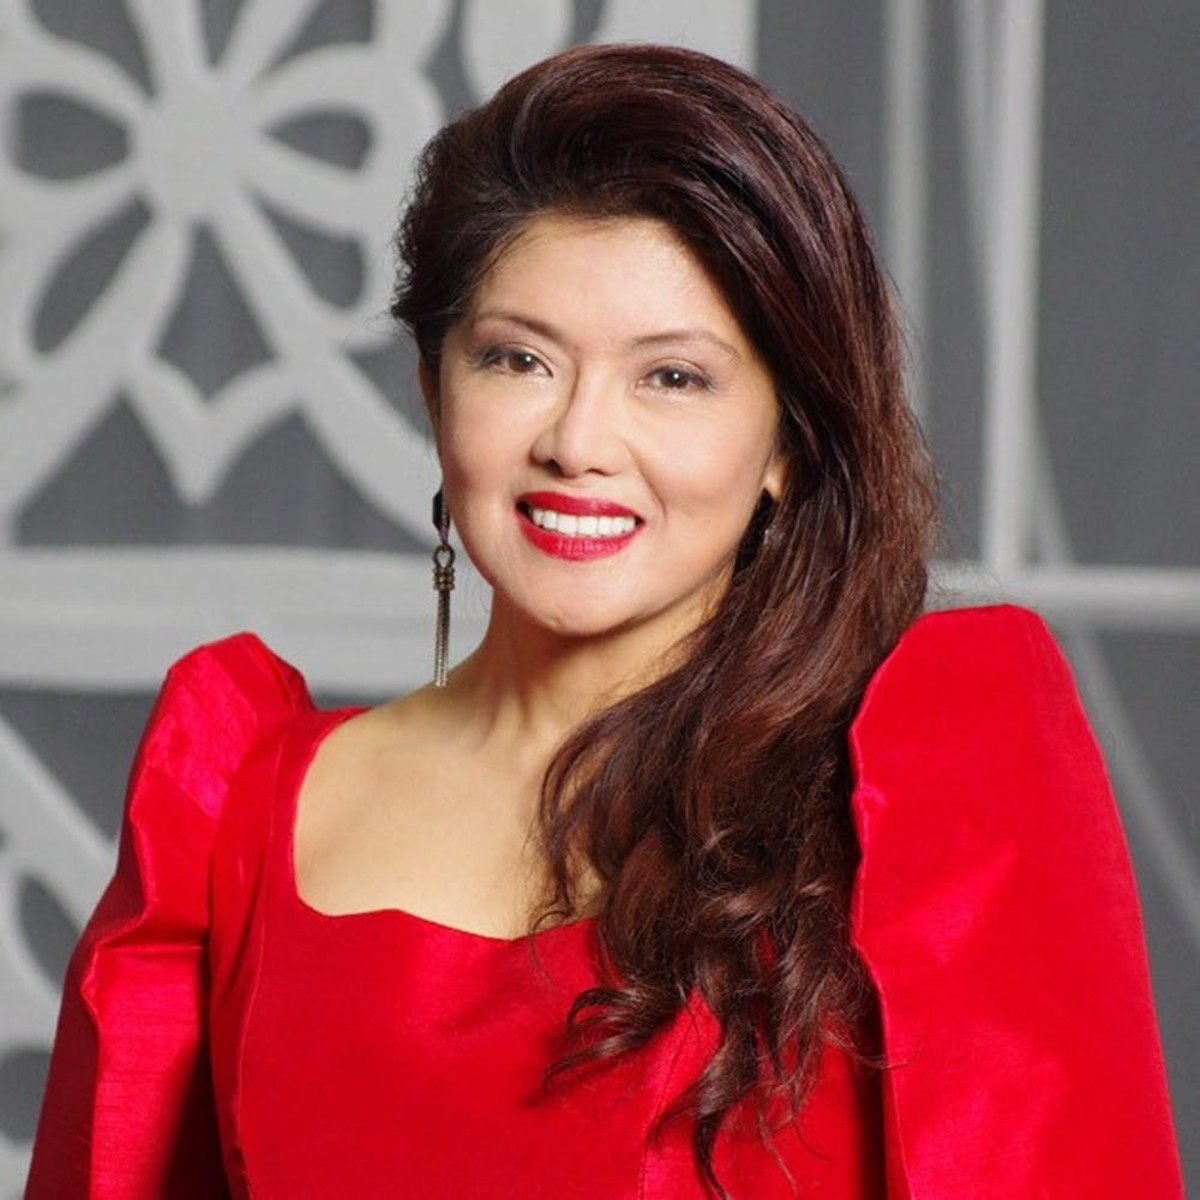 Imee Marcos, one of the reciepient of the curse.